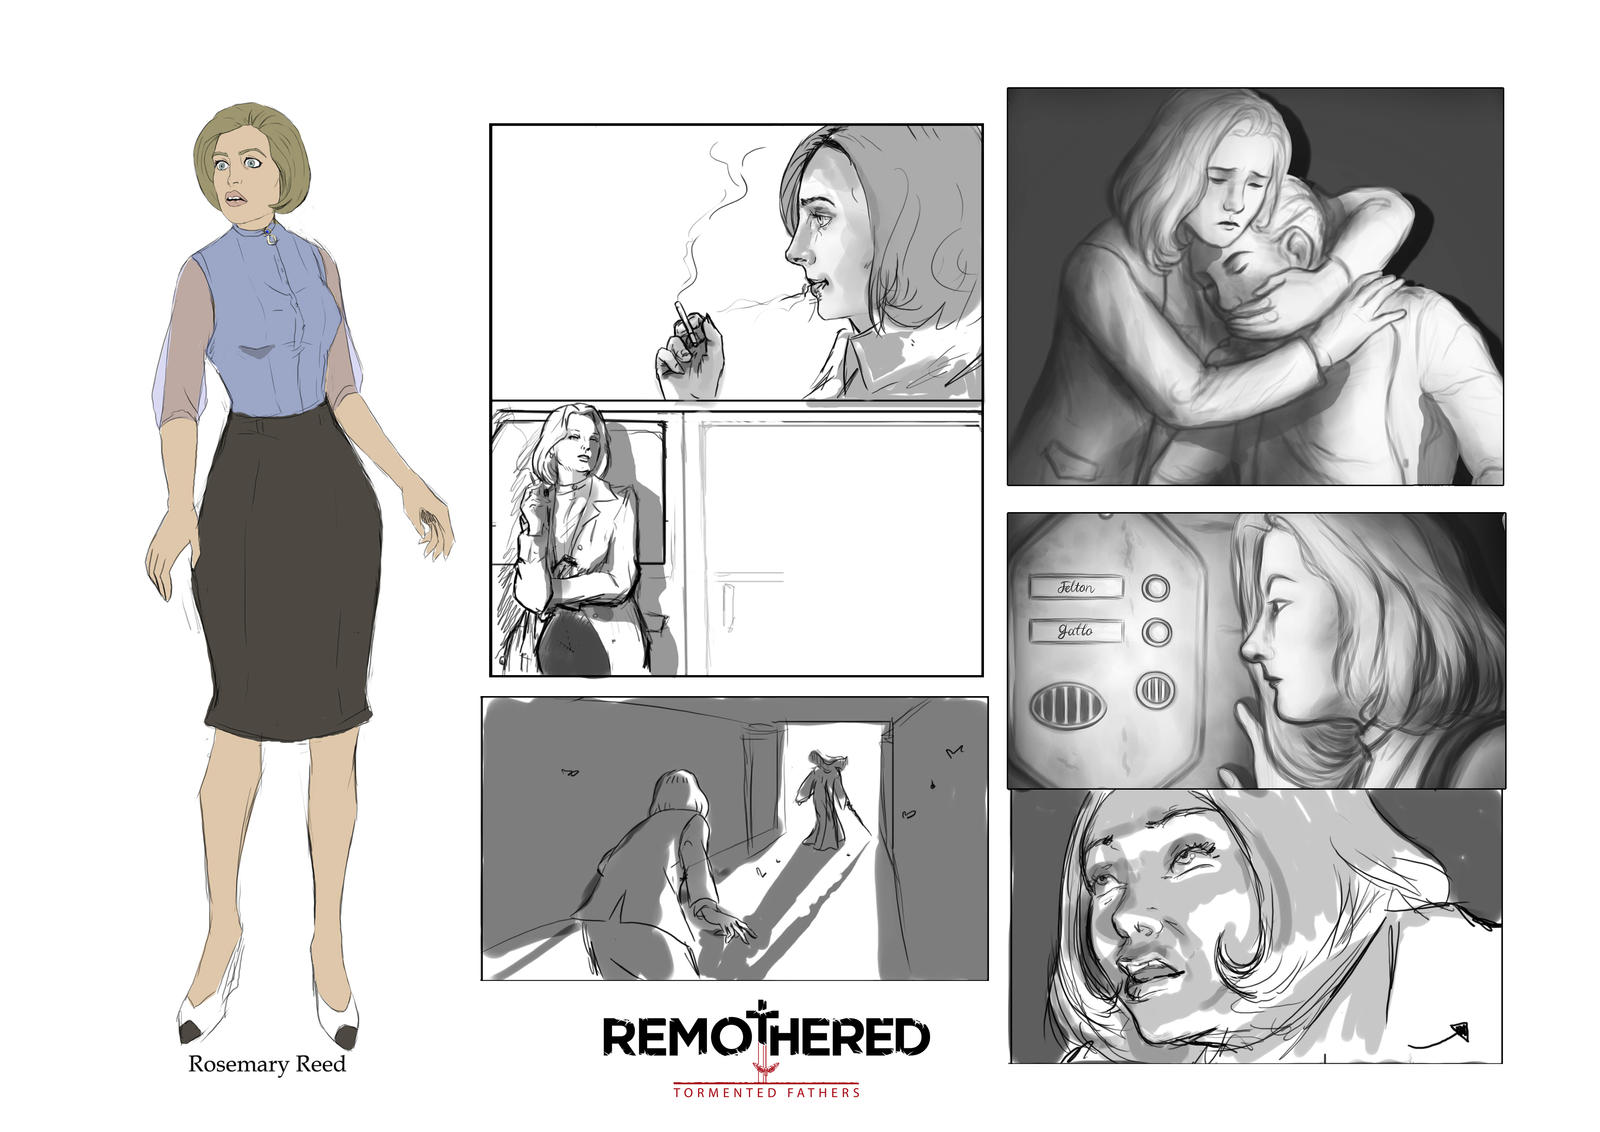 REMOTHERED: Tormented Fathers - Rosemary Reed